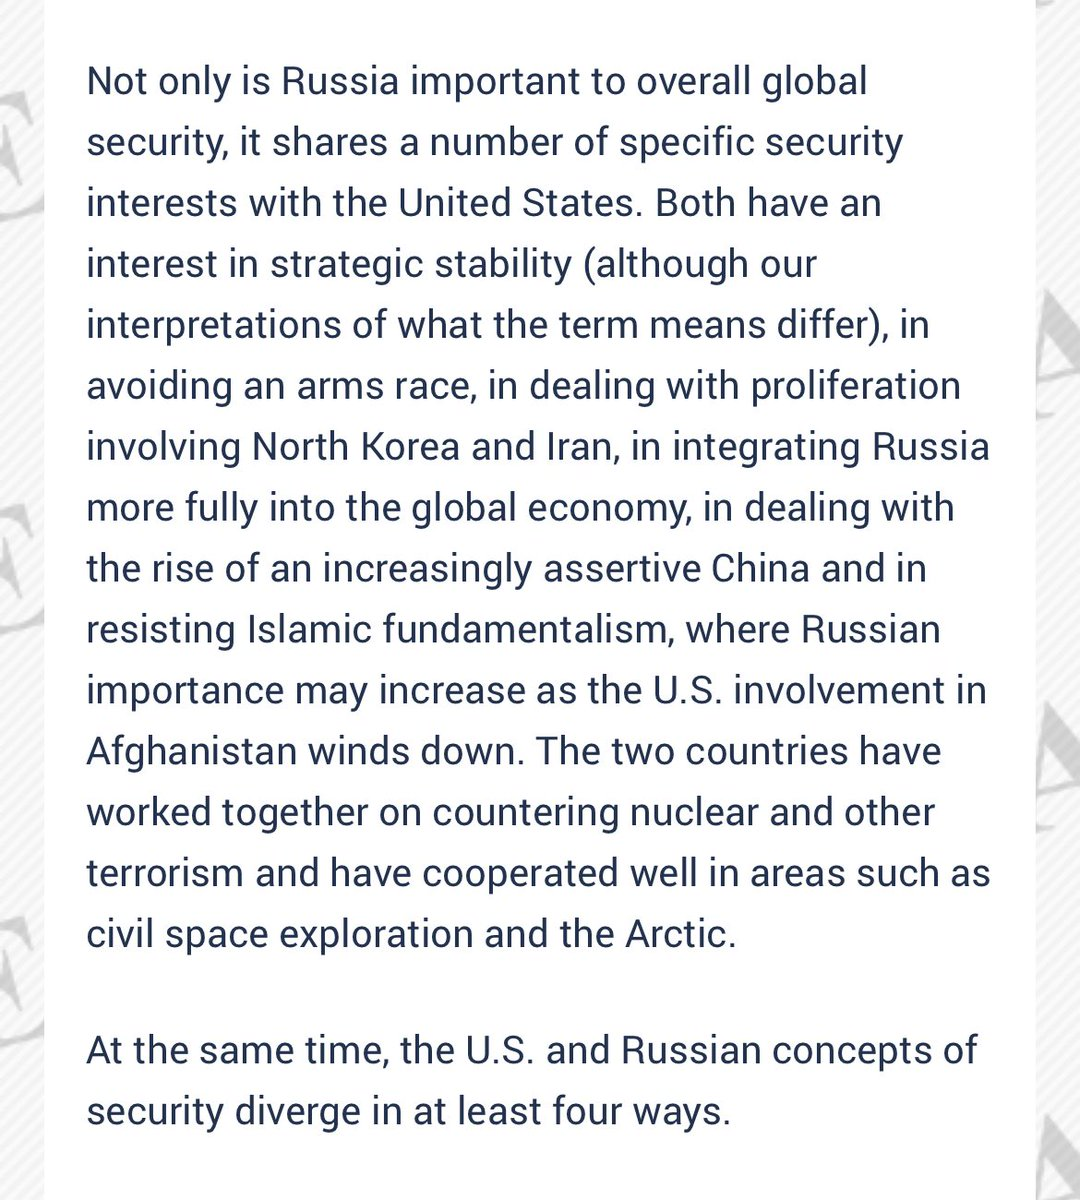 In our discussion @peacock anchored by @mehdirhasan, I mentioned this study we did at the ISAB after Putin invaded Ukraine. We detailed how we had to resist Russian moves but continue to cooperate on key issues. Still operative today.  https://t.co/Bk7yn0HsBp https://t.co/q3AnjjyPNP